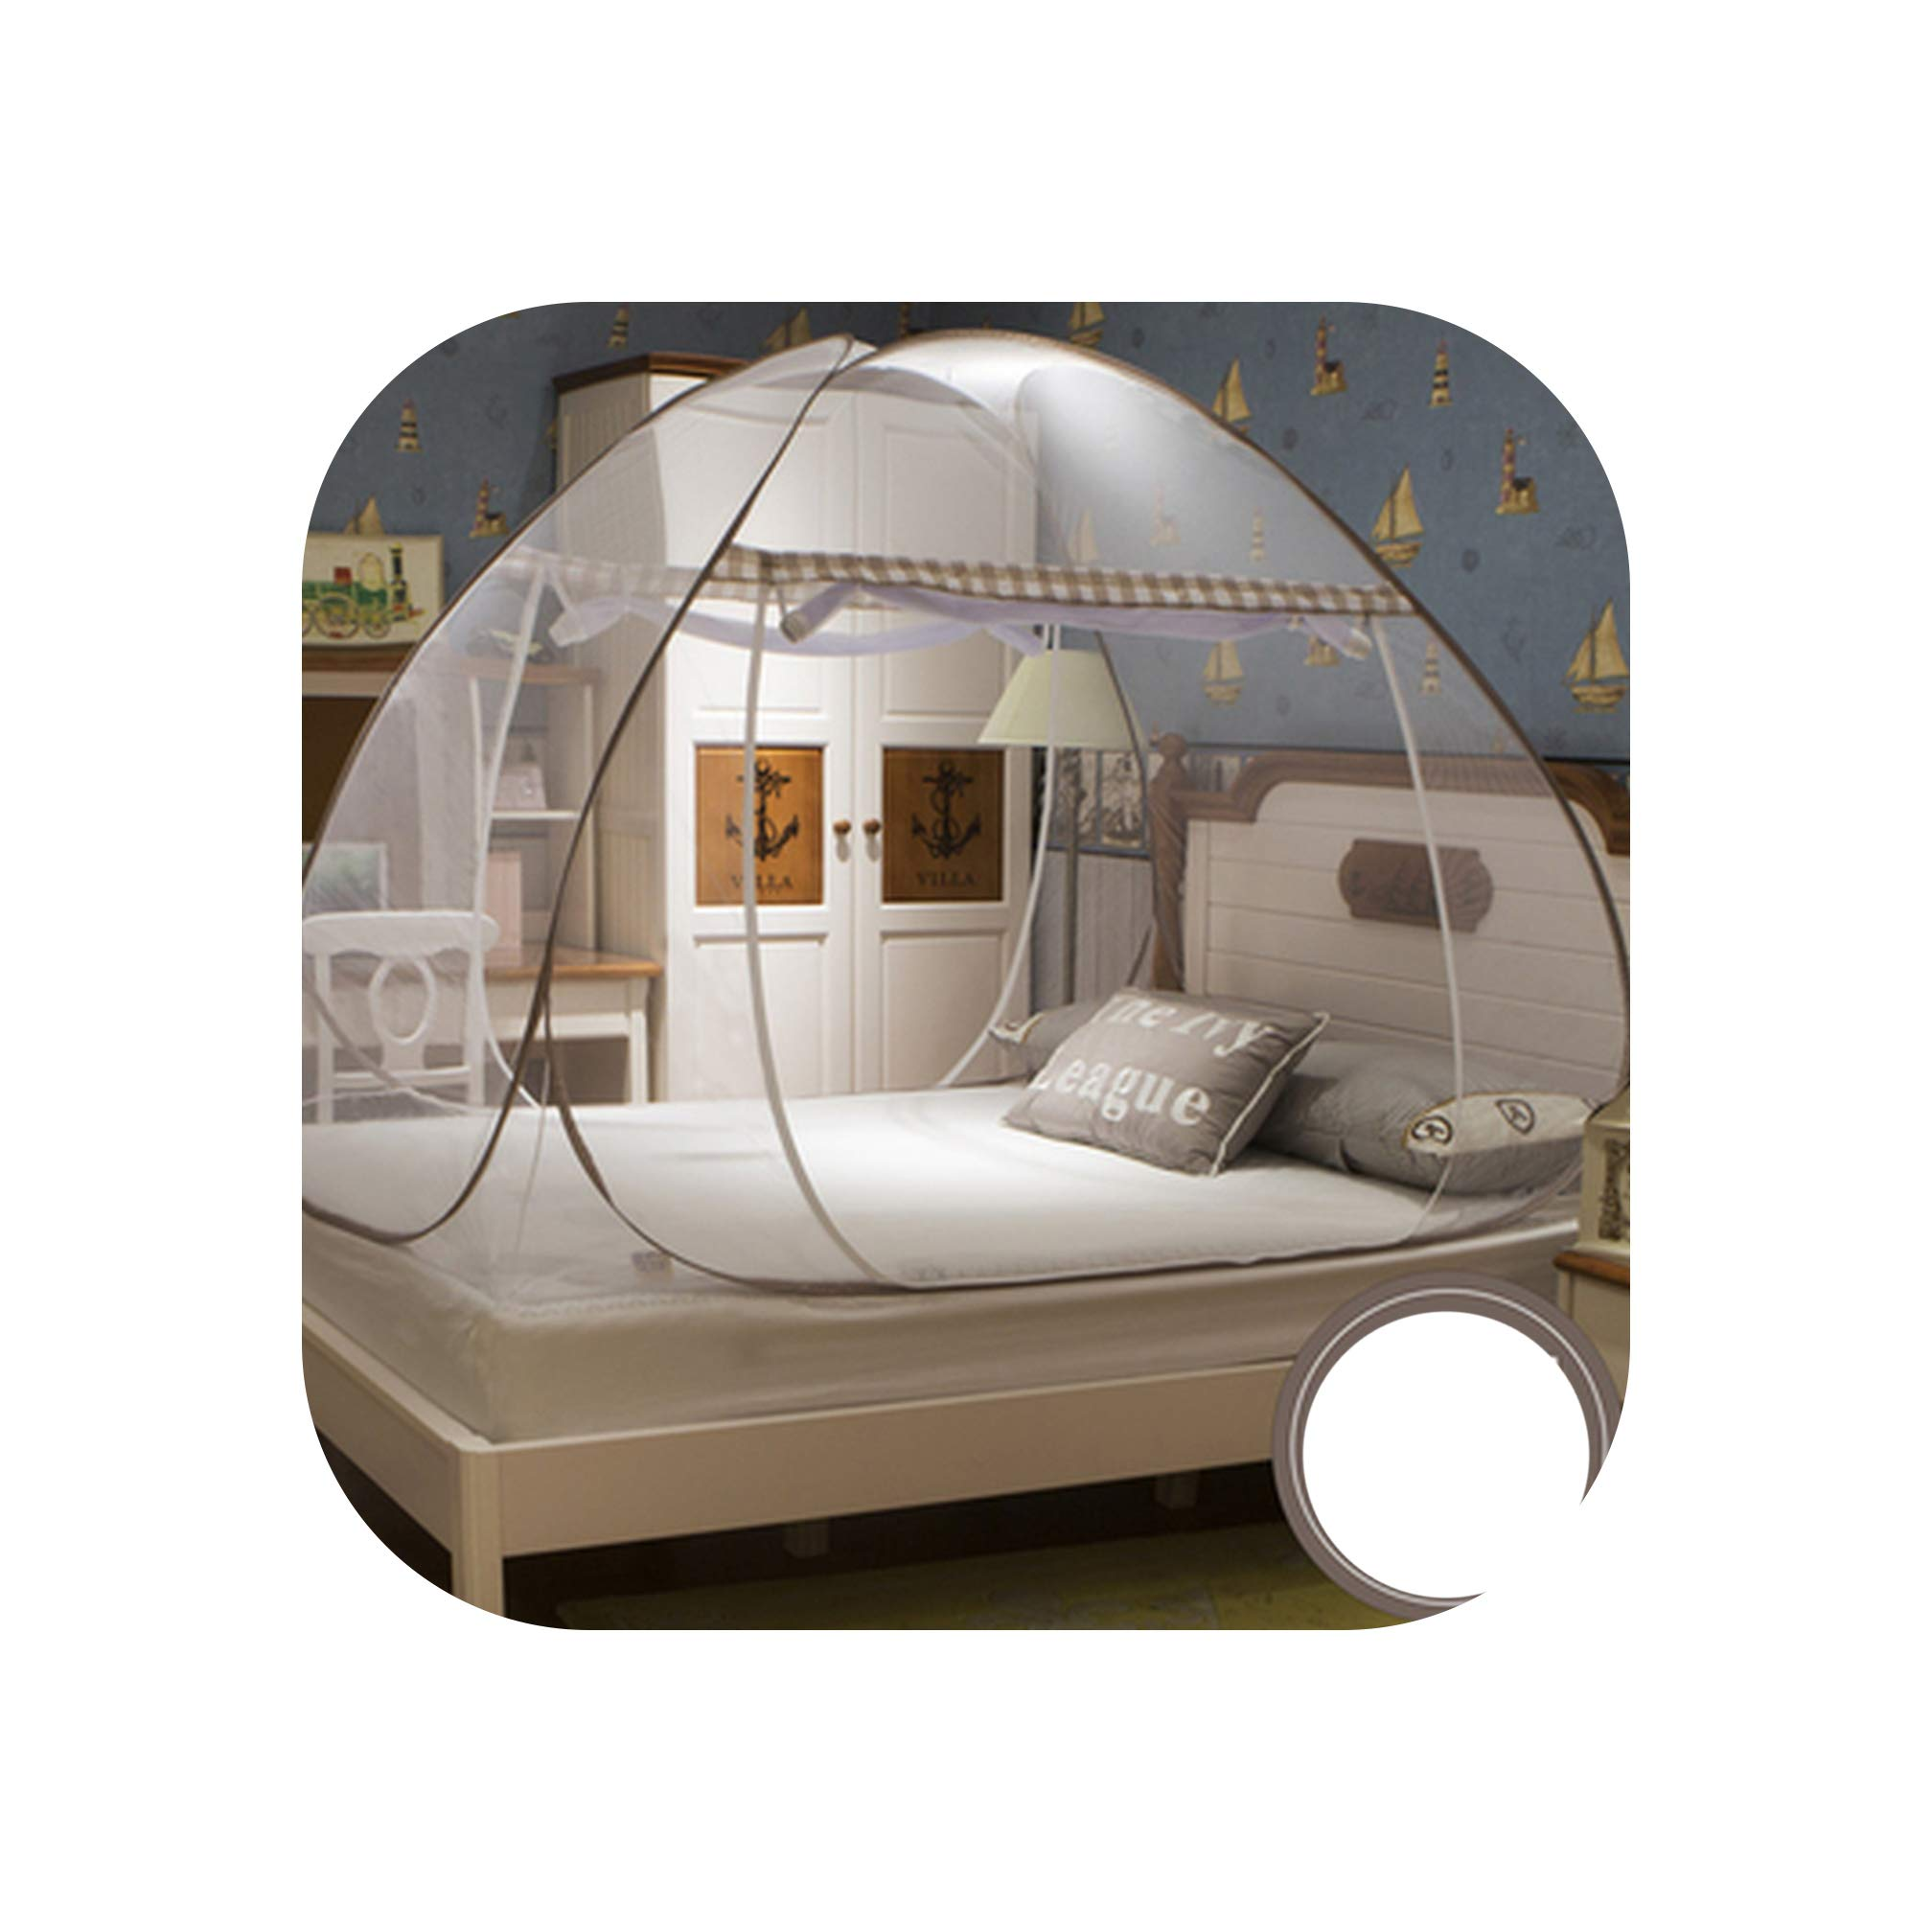 Portable Round Mosquito Net for Single Double Bed Adults Bed Canopy Home Bug Insect Bed Tent Anti Mosquito Mesh Netting klamboe,Brown,1.8m (6 feet) Bed